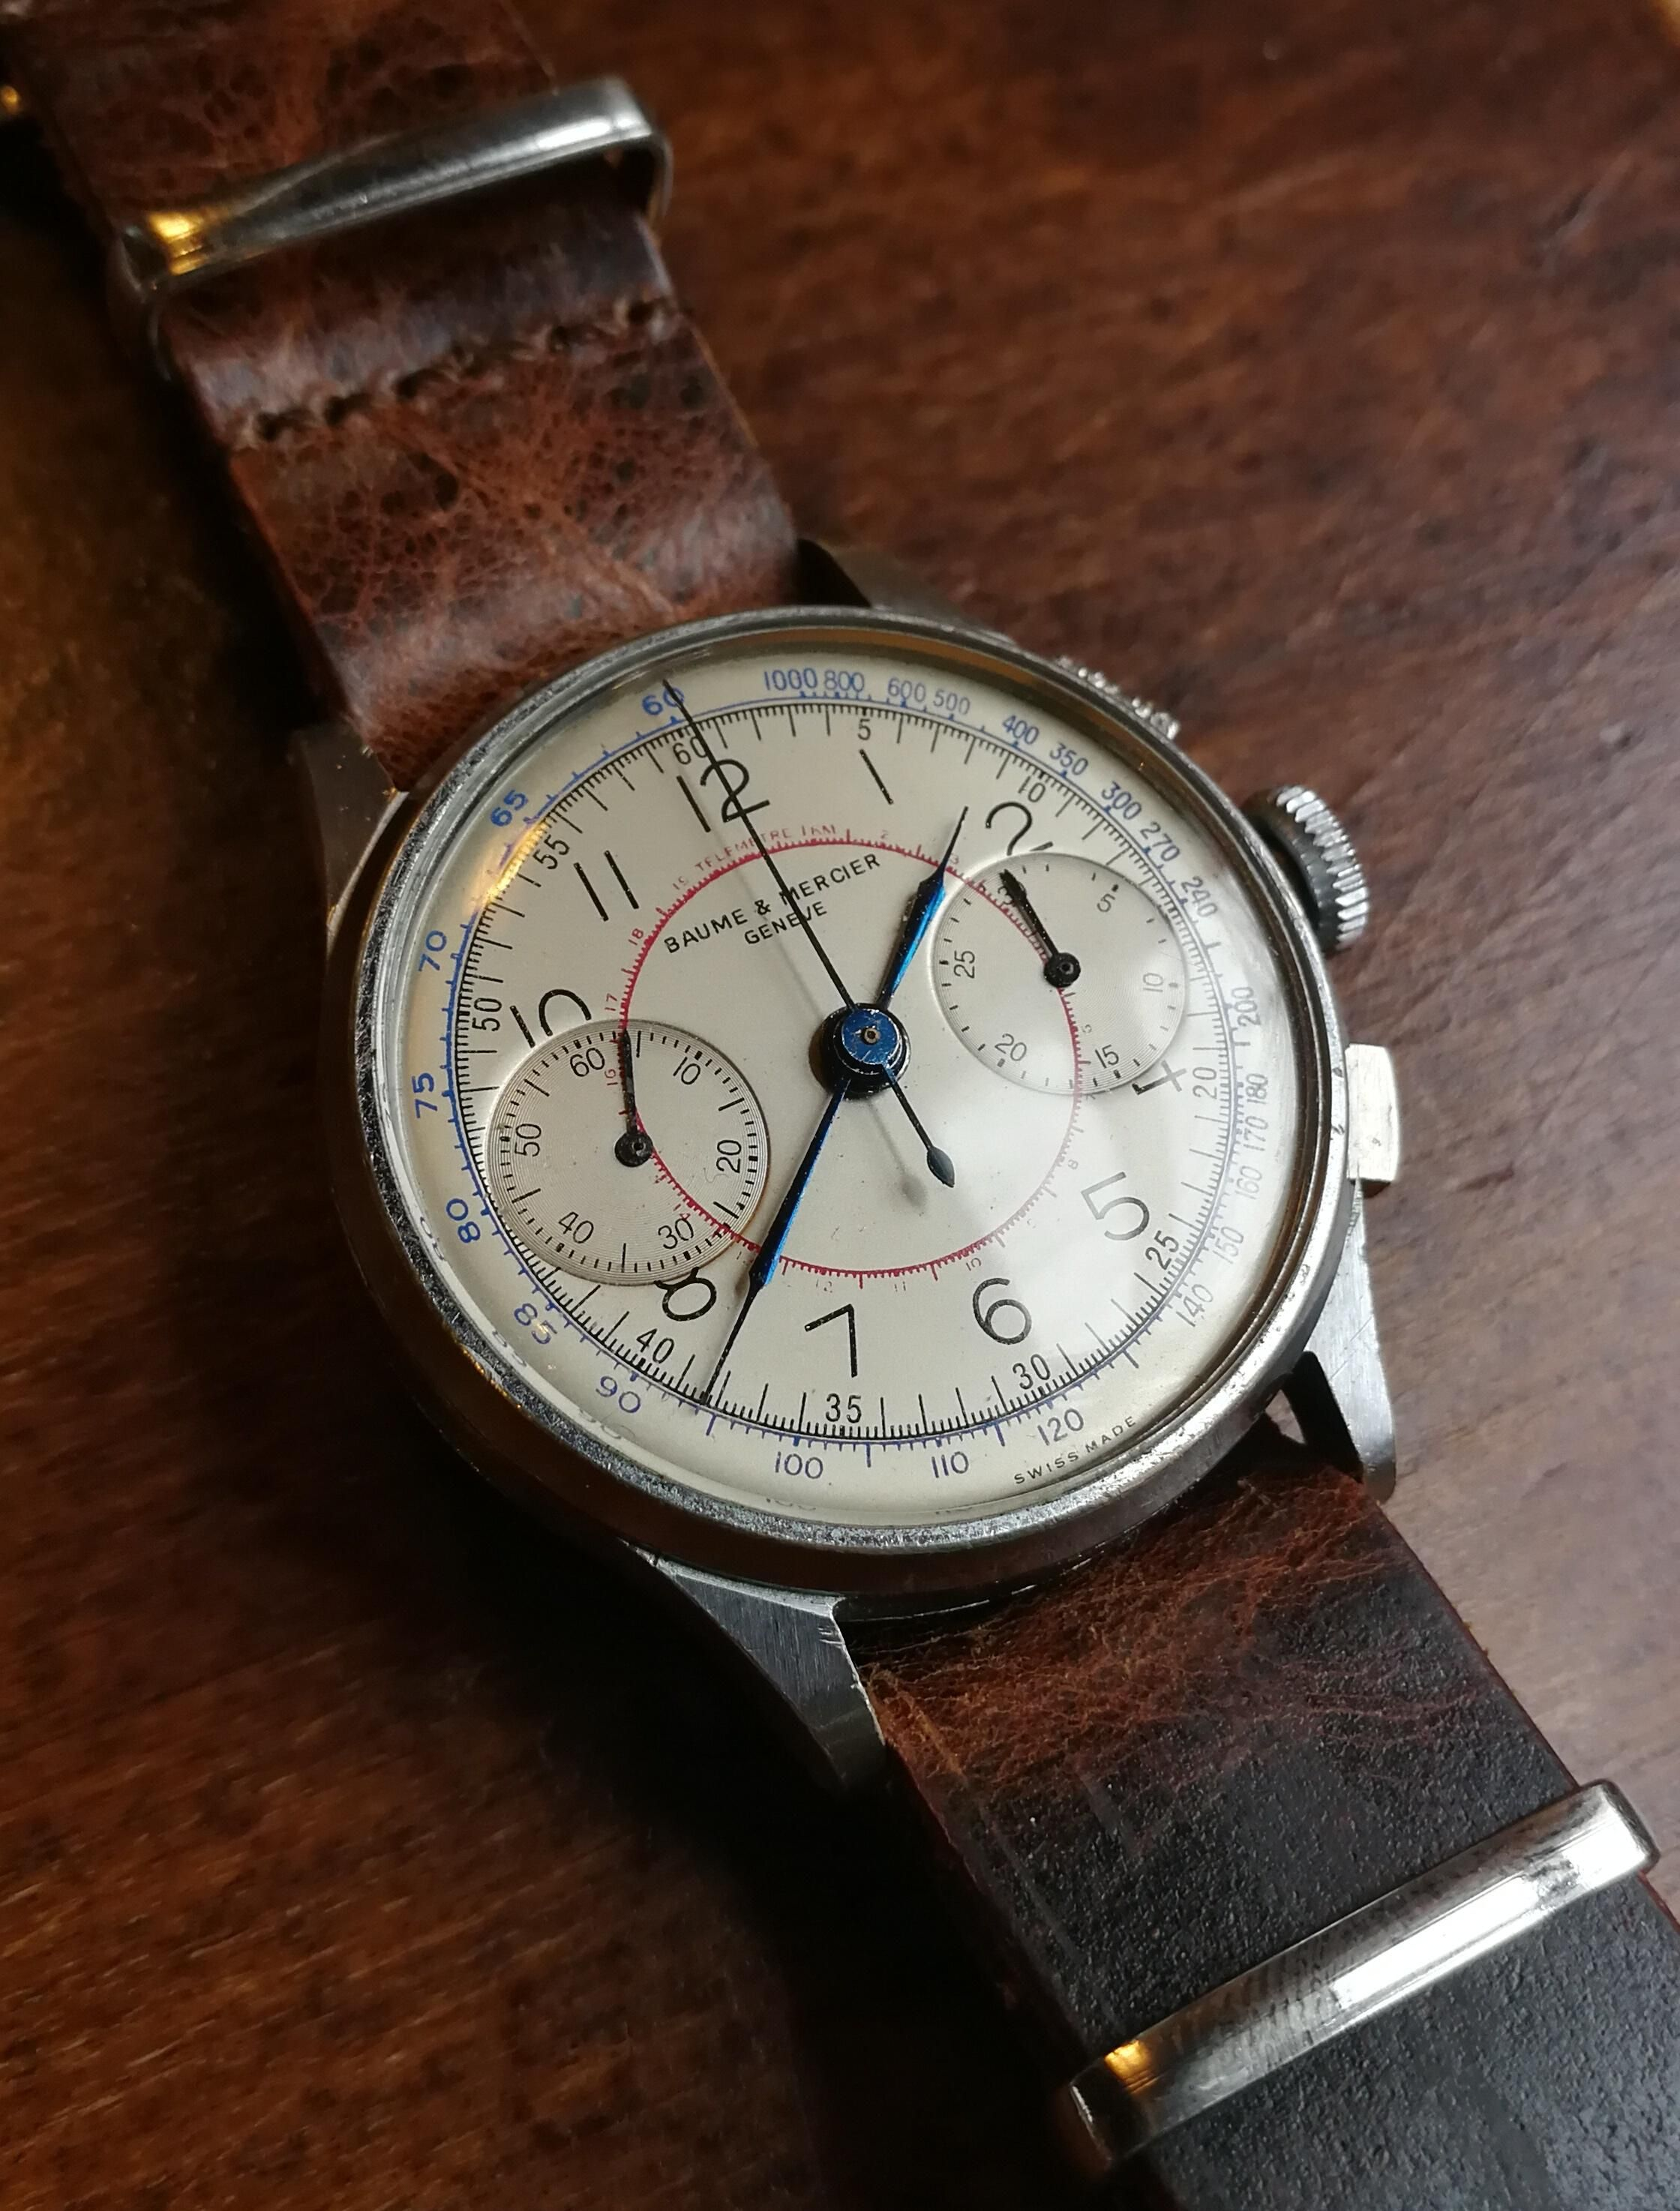 vintage new take henry of the introducing lover chronograph style affordable dan lovers watches variants watch collection s a both